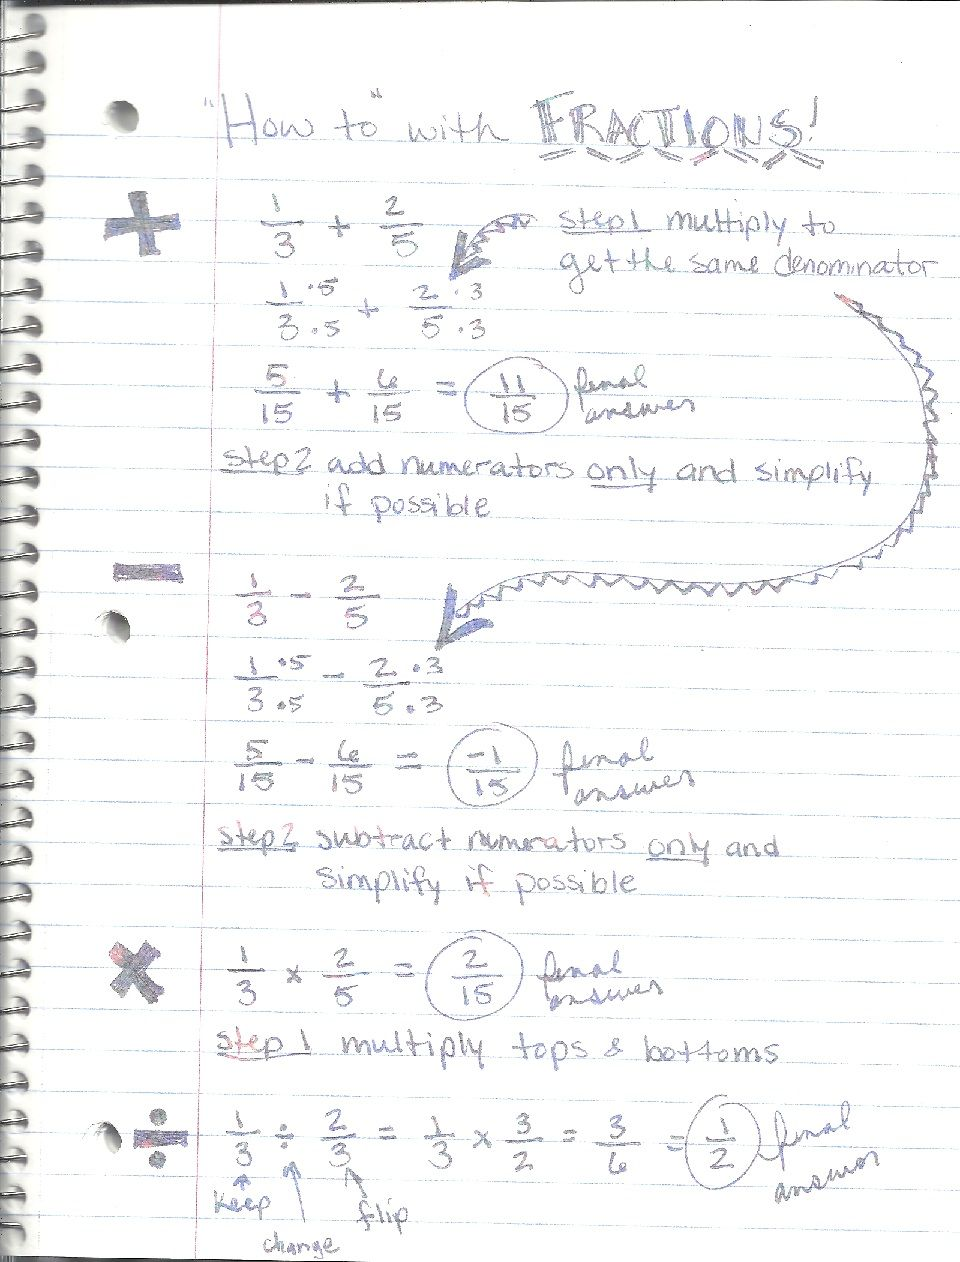 How To Add Subtract Multiply Divide Fractions 5th